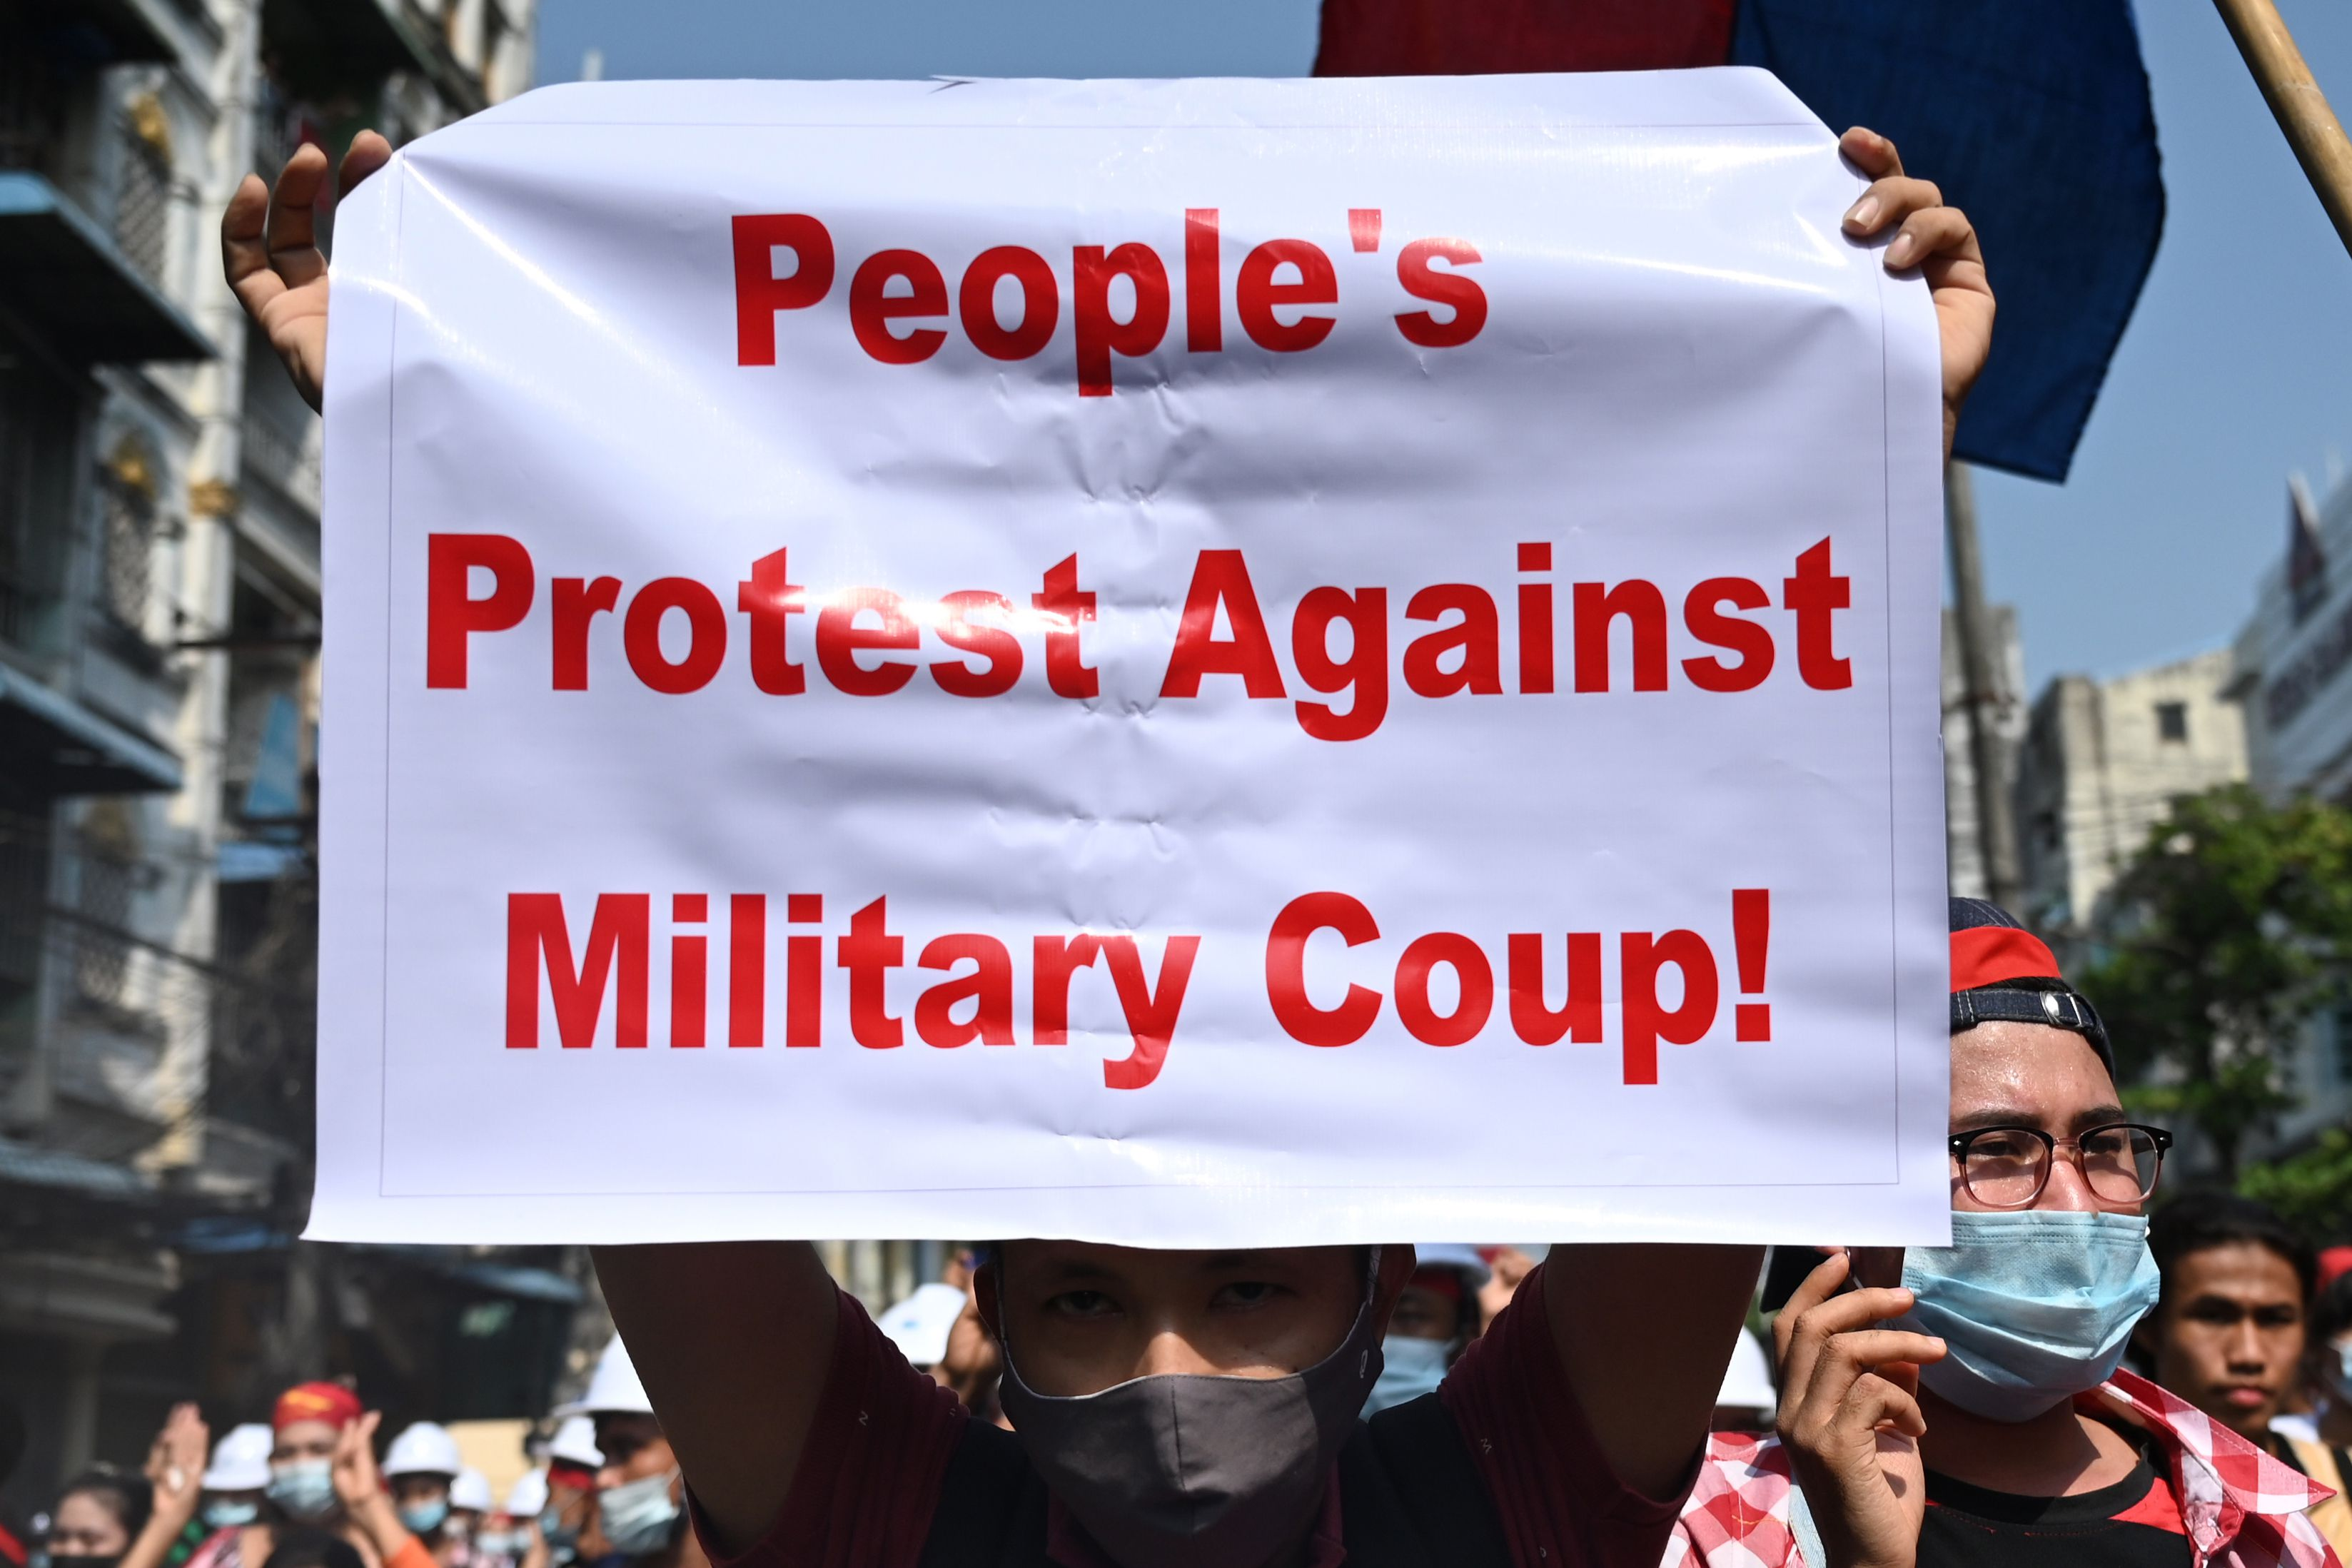 A protester holds up a sign during a demonstration against the military coup in Yangon on February 6, 2021. (Photo by YE AUNG THU / AFP)